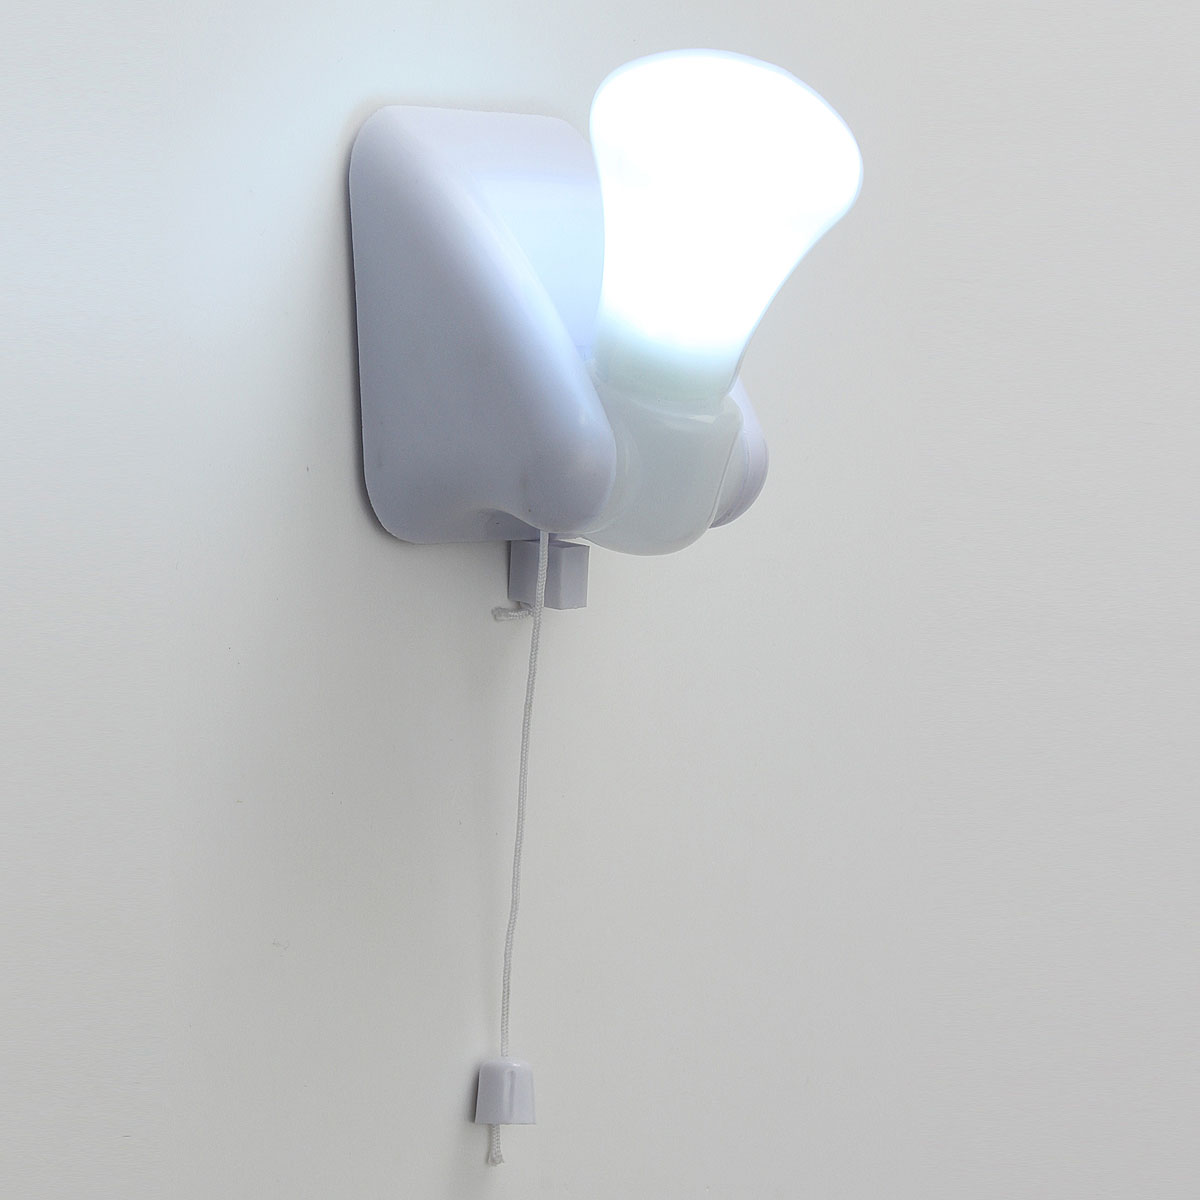 Stick Up Light Bulb Wireless Cordless Battery Operated Portable Night Wall Lamp eBay